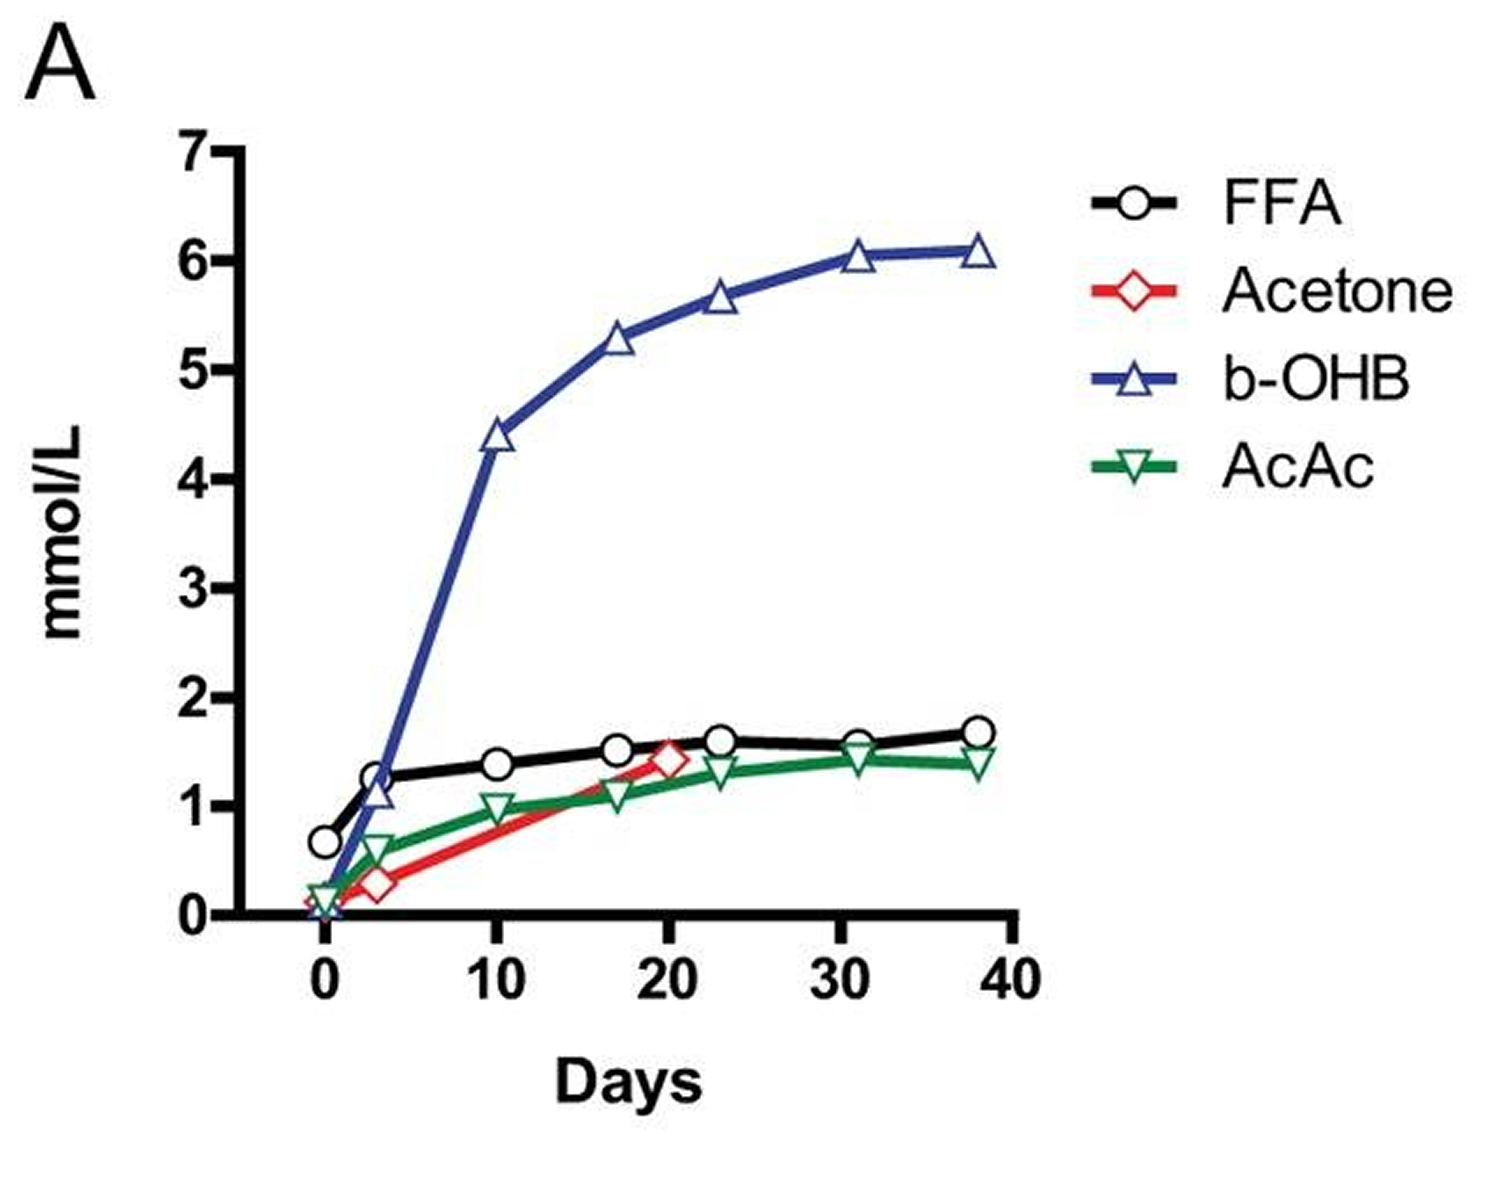 ketone bodies during fasting in humans